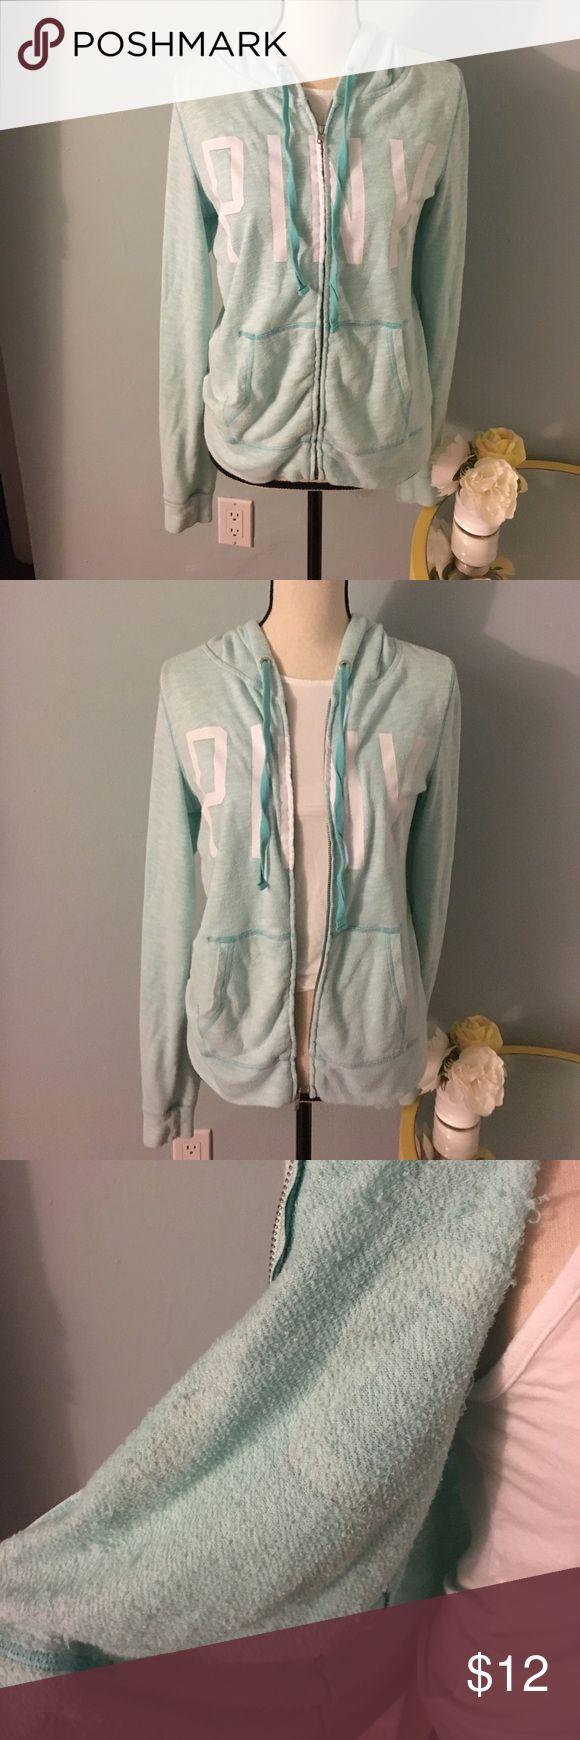 Pink by VS light blood zip up hoodie Very light and comfy, cotton/terry cloth fabric. Light blue with white writing. Size medium. PINK Victoria's Secret Jackets & Coats Utility Jackets